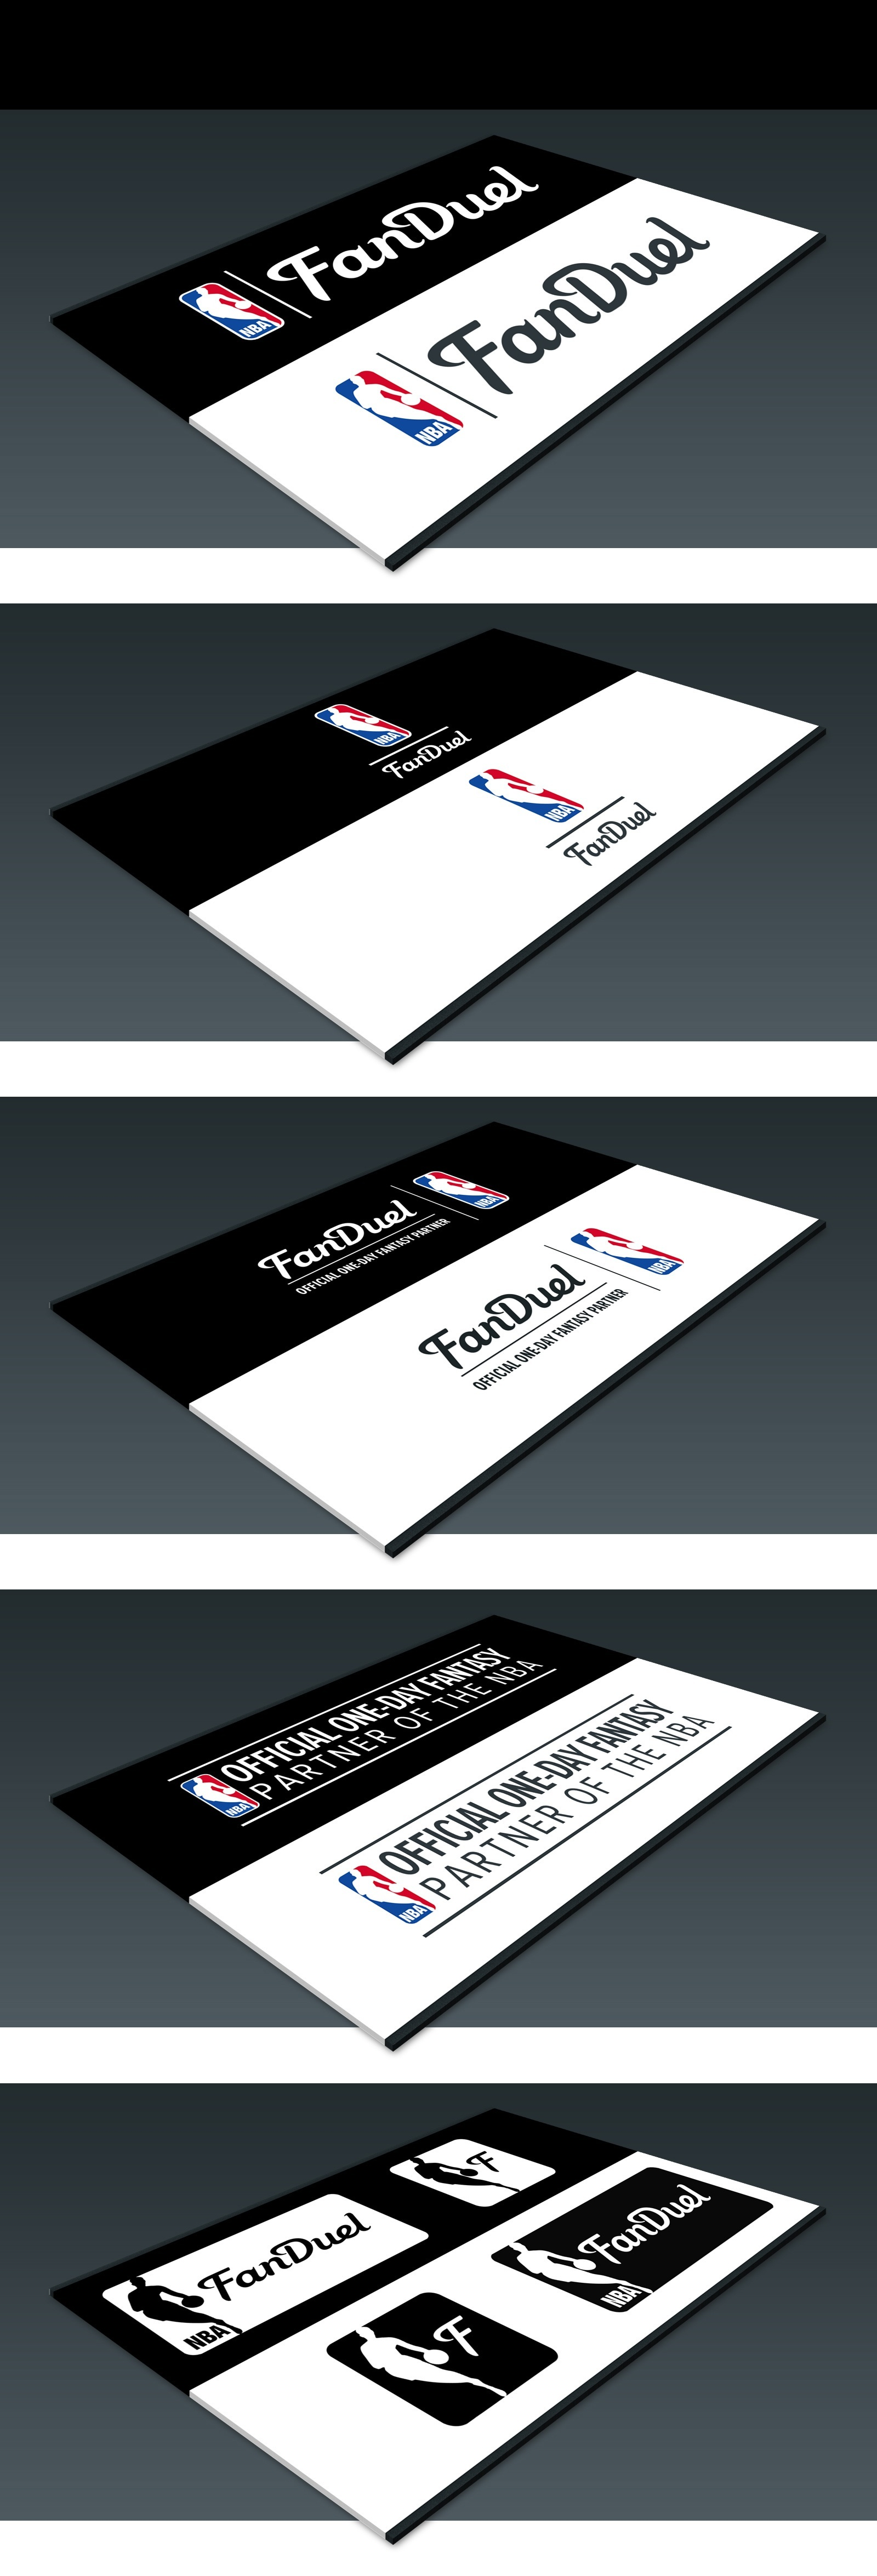 RE EVOLUTION // FanDuel - NBA Branding